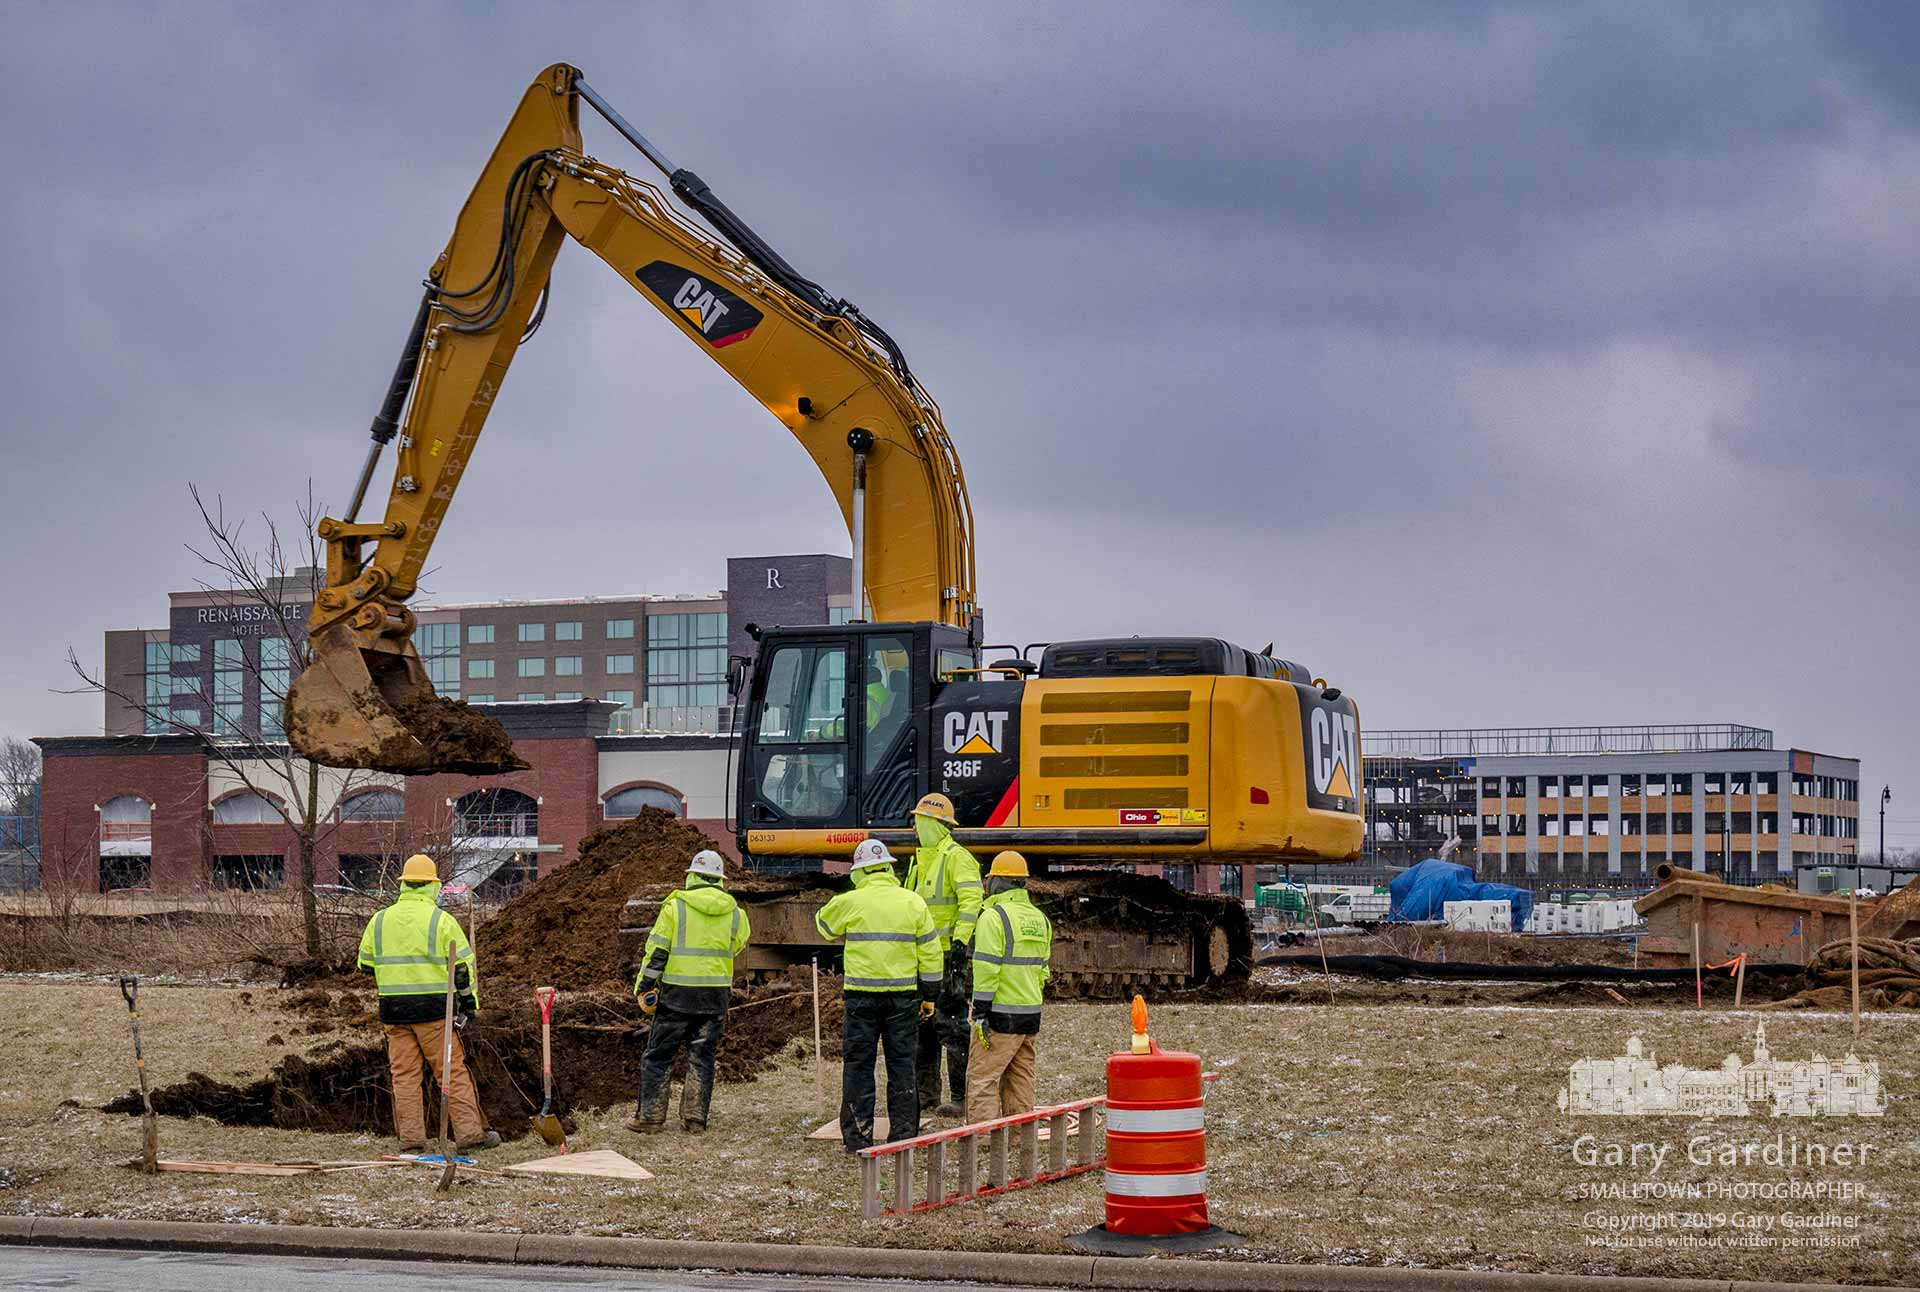 A work crew taps into a water line as construction begins for a new roadway leading into Westar from Polaris Parkway where several restaurants are approved for construction. My Final Photo for Feb. 13, 2019.